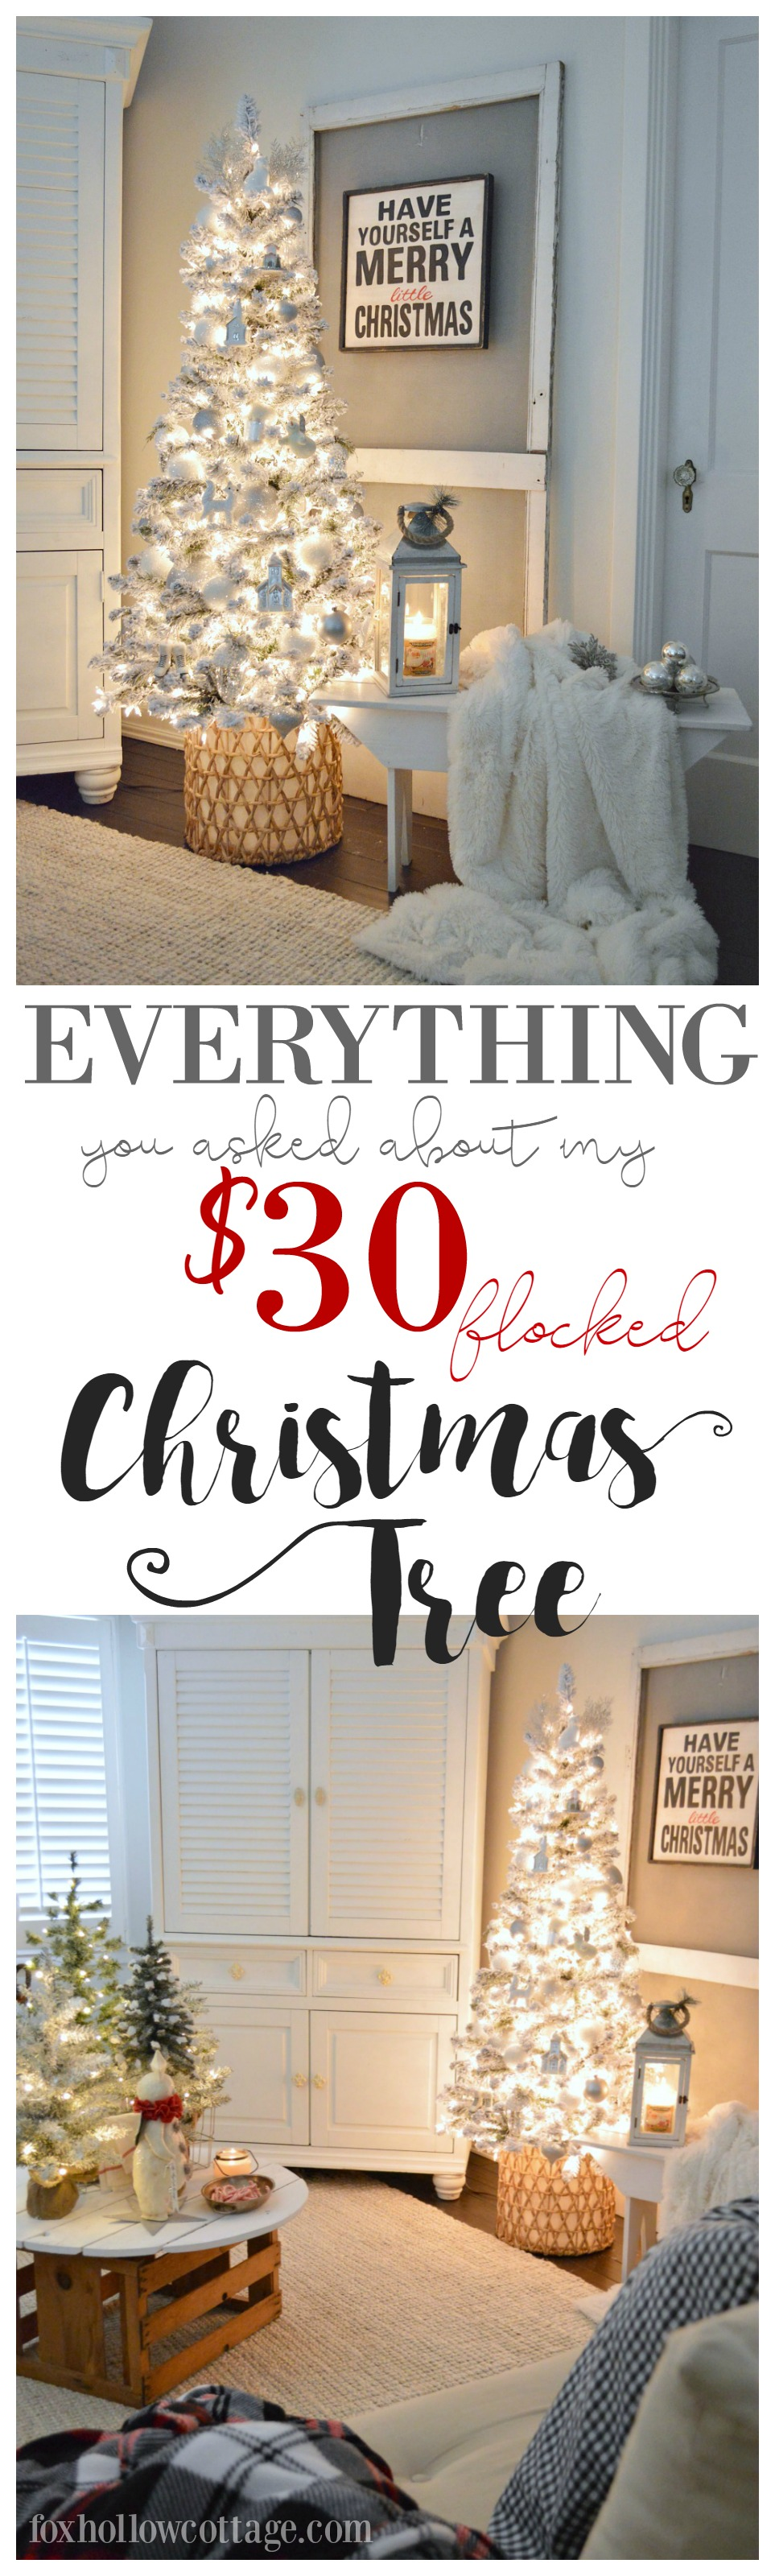 My $30 flocked Christmas tree - Where I got it, the lights I used, my basket size, tips and everything you've all been asking about - answered. Because holidays decorating can be affordable and still be pretty! For more everyday and seasonal decorating ideas that won't leave you broke, visit foxhollowcottage.com